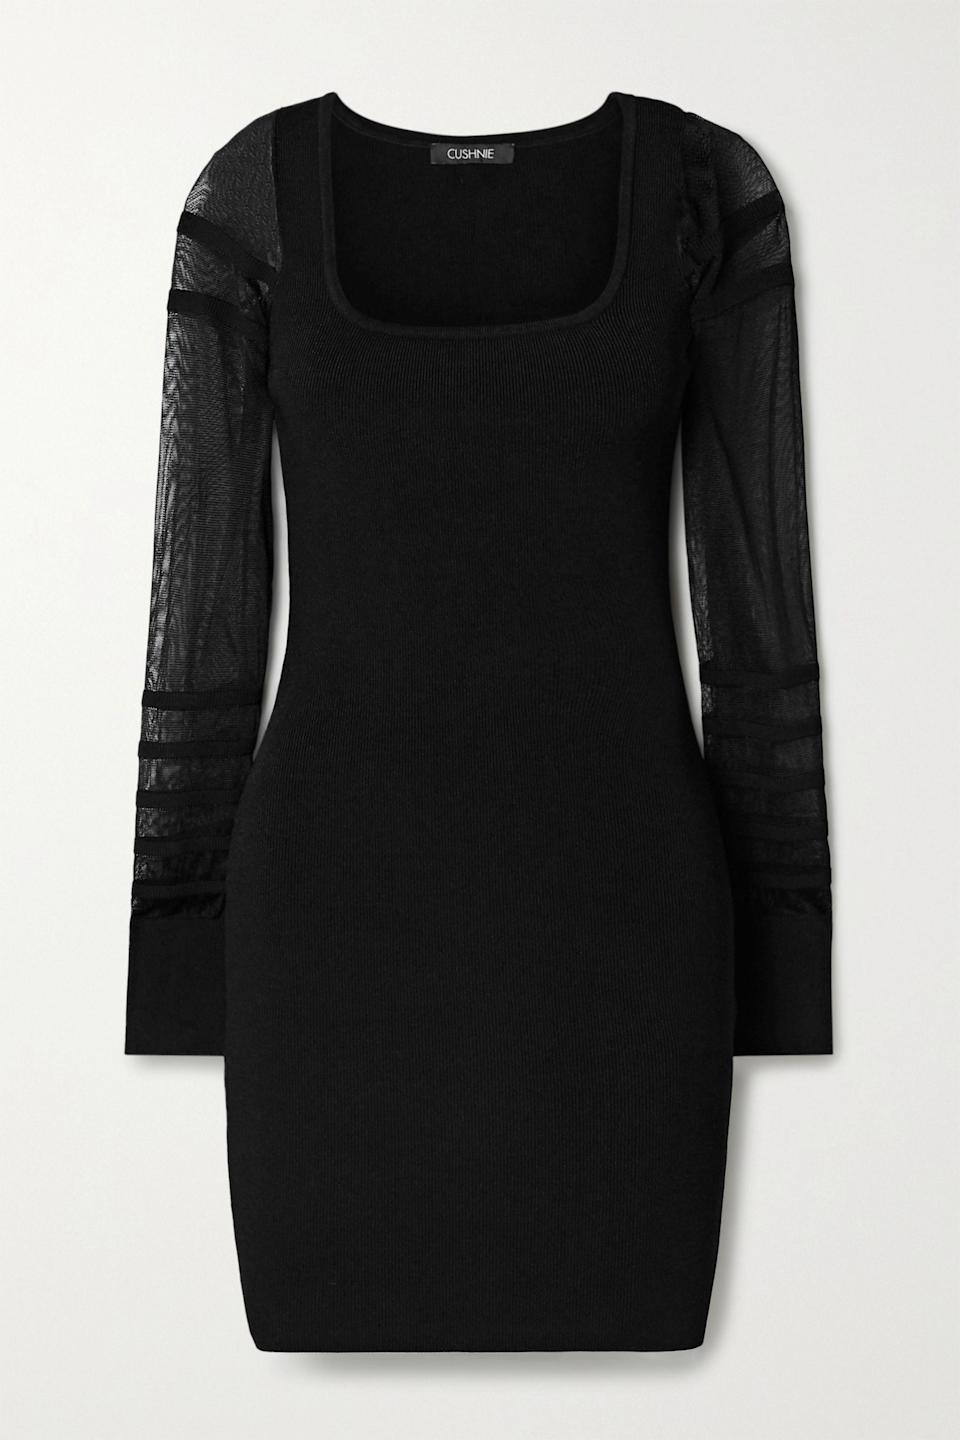 """<p><strong>Cushnie</strong></p><p>net-a-porter.com</p><p><strong>$895.00</strong></p><p><a href=""""https://click.linksynergy.com/deeplink?id=6Km1lFswsiY&mid=24449&murl=https%3A%2F%2Fwww.net-a-porter.com%2Fen-us%2Fshop%2Fproduct%2Fcushnie%2Fpaneled-ribbed-knit-mini-dress%2F1258384"""" rel=""""nofollow noopener"""" target=""""_blank"""" data-ylk=""""slk:Shop Now"""" class=""""link rapid-noclick-resp"""">Shop Now</a></p><p>This is for the woman who exudes glamour and always finds an excuse to dress up. While we're sure she already has many LBD's this one's sheer sleeves make it stand out from the rest.</p>"""